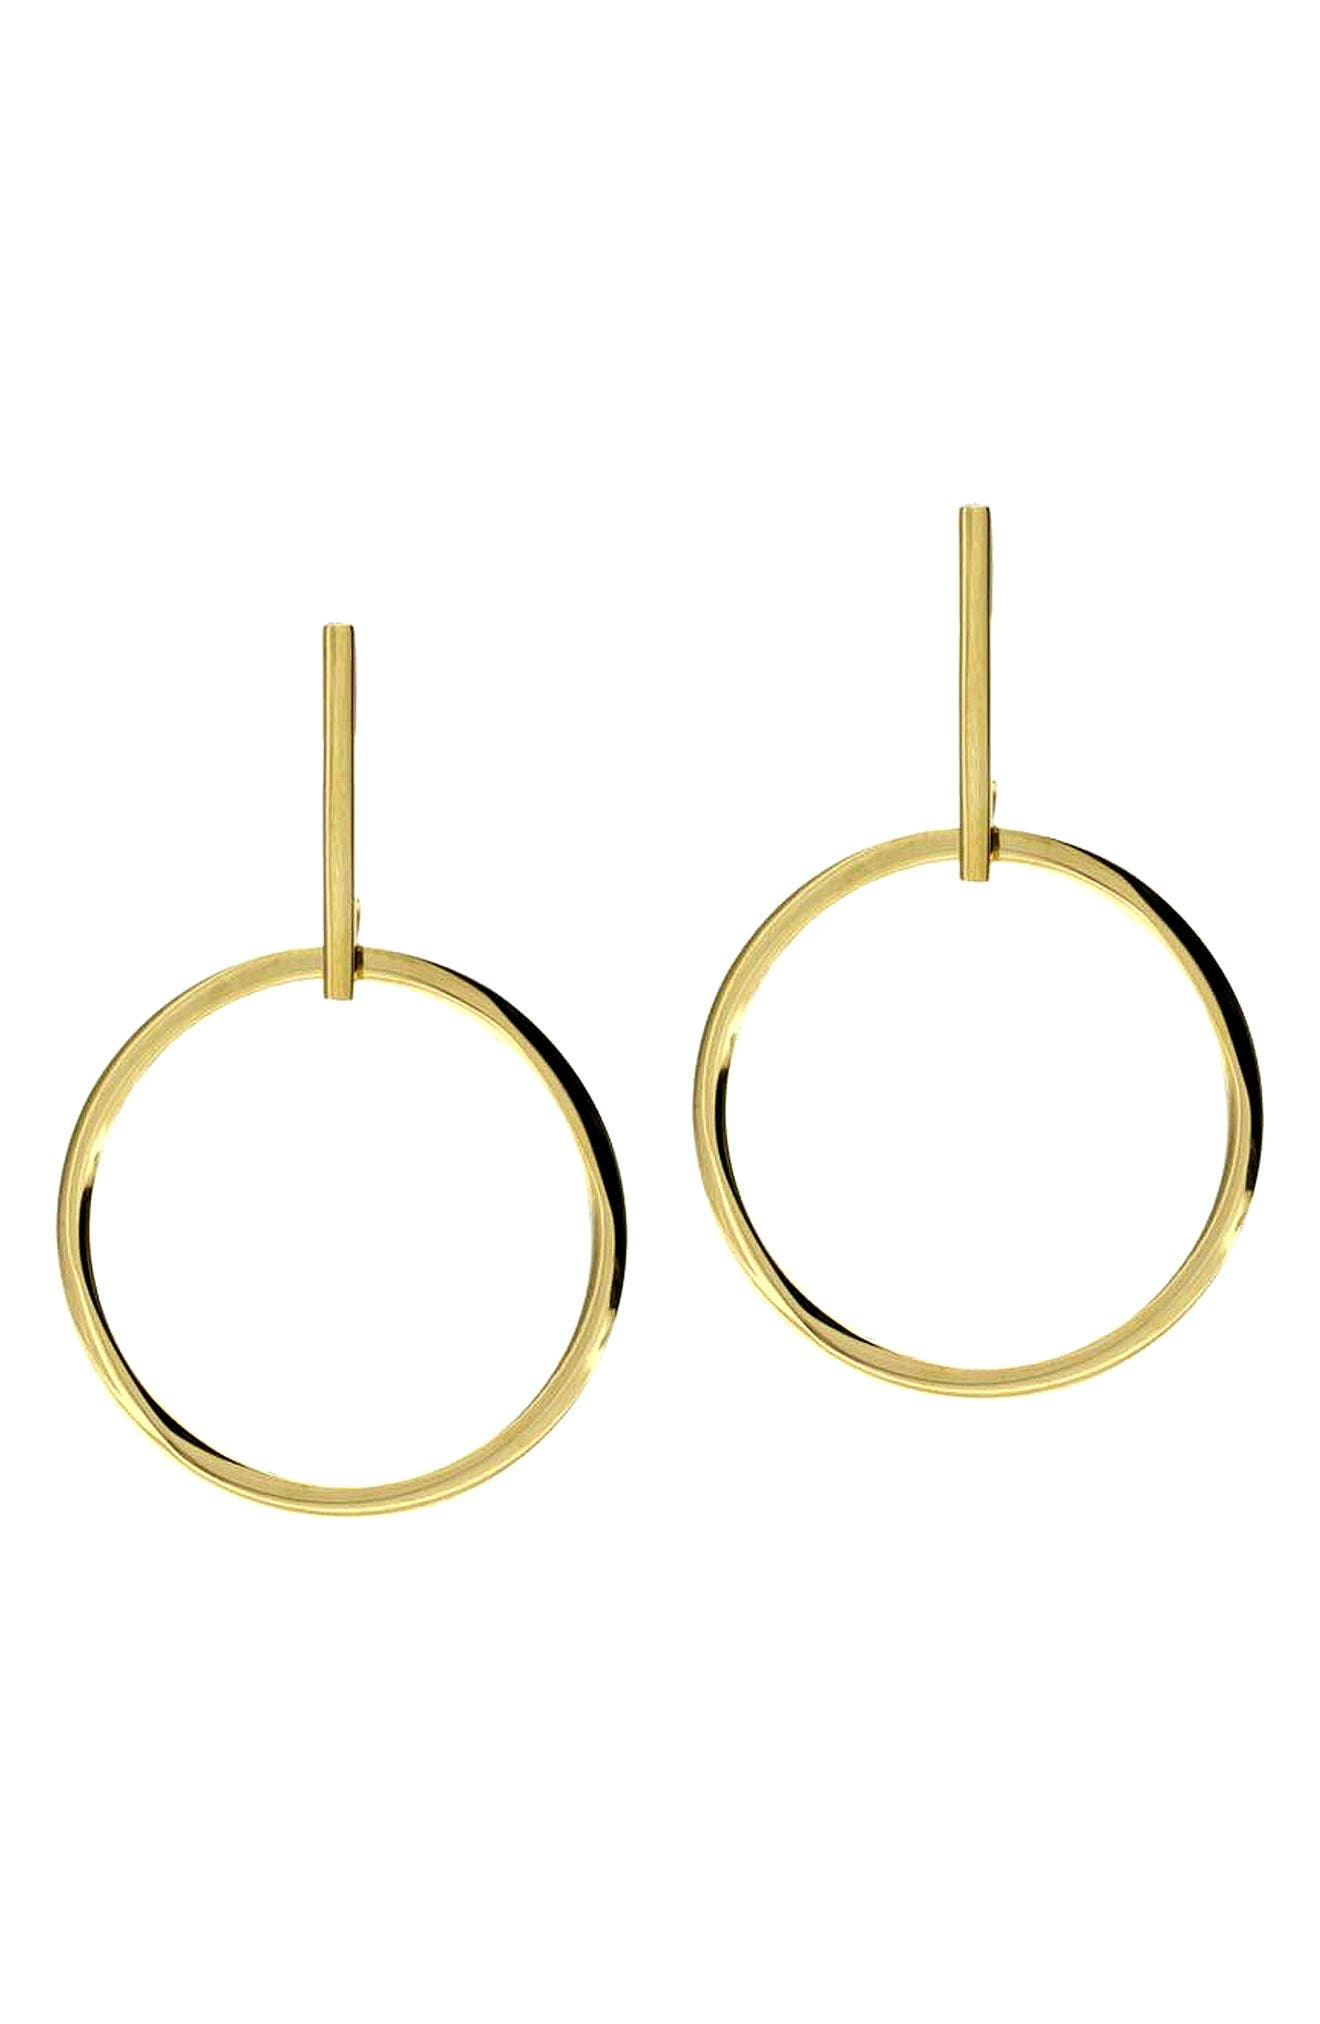 Joplin Hoop Earrings,                         Main,                         color, GOLD